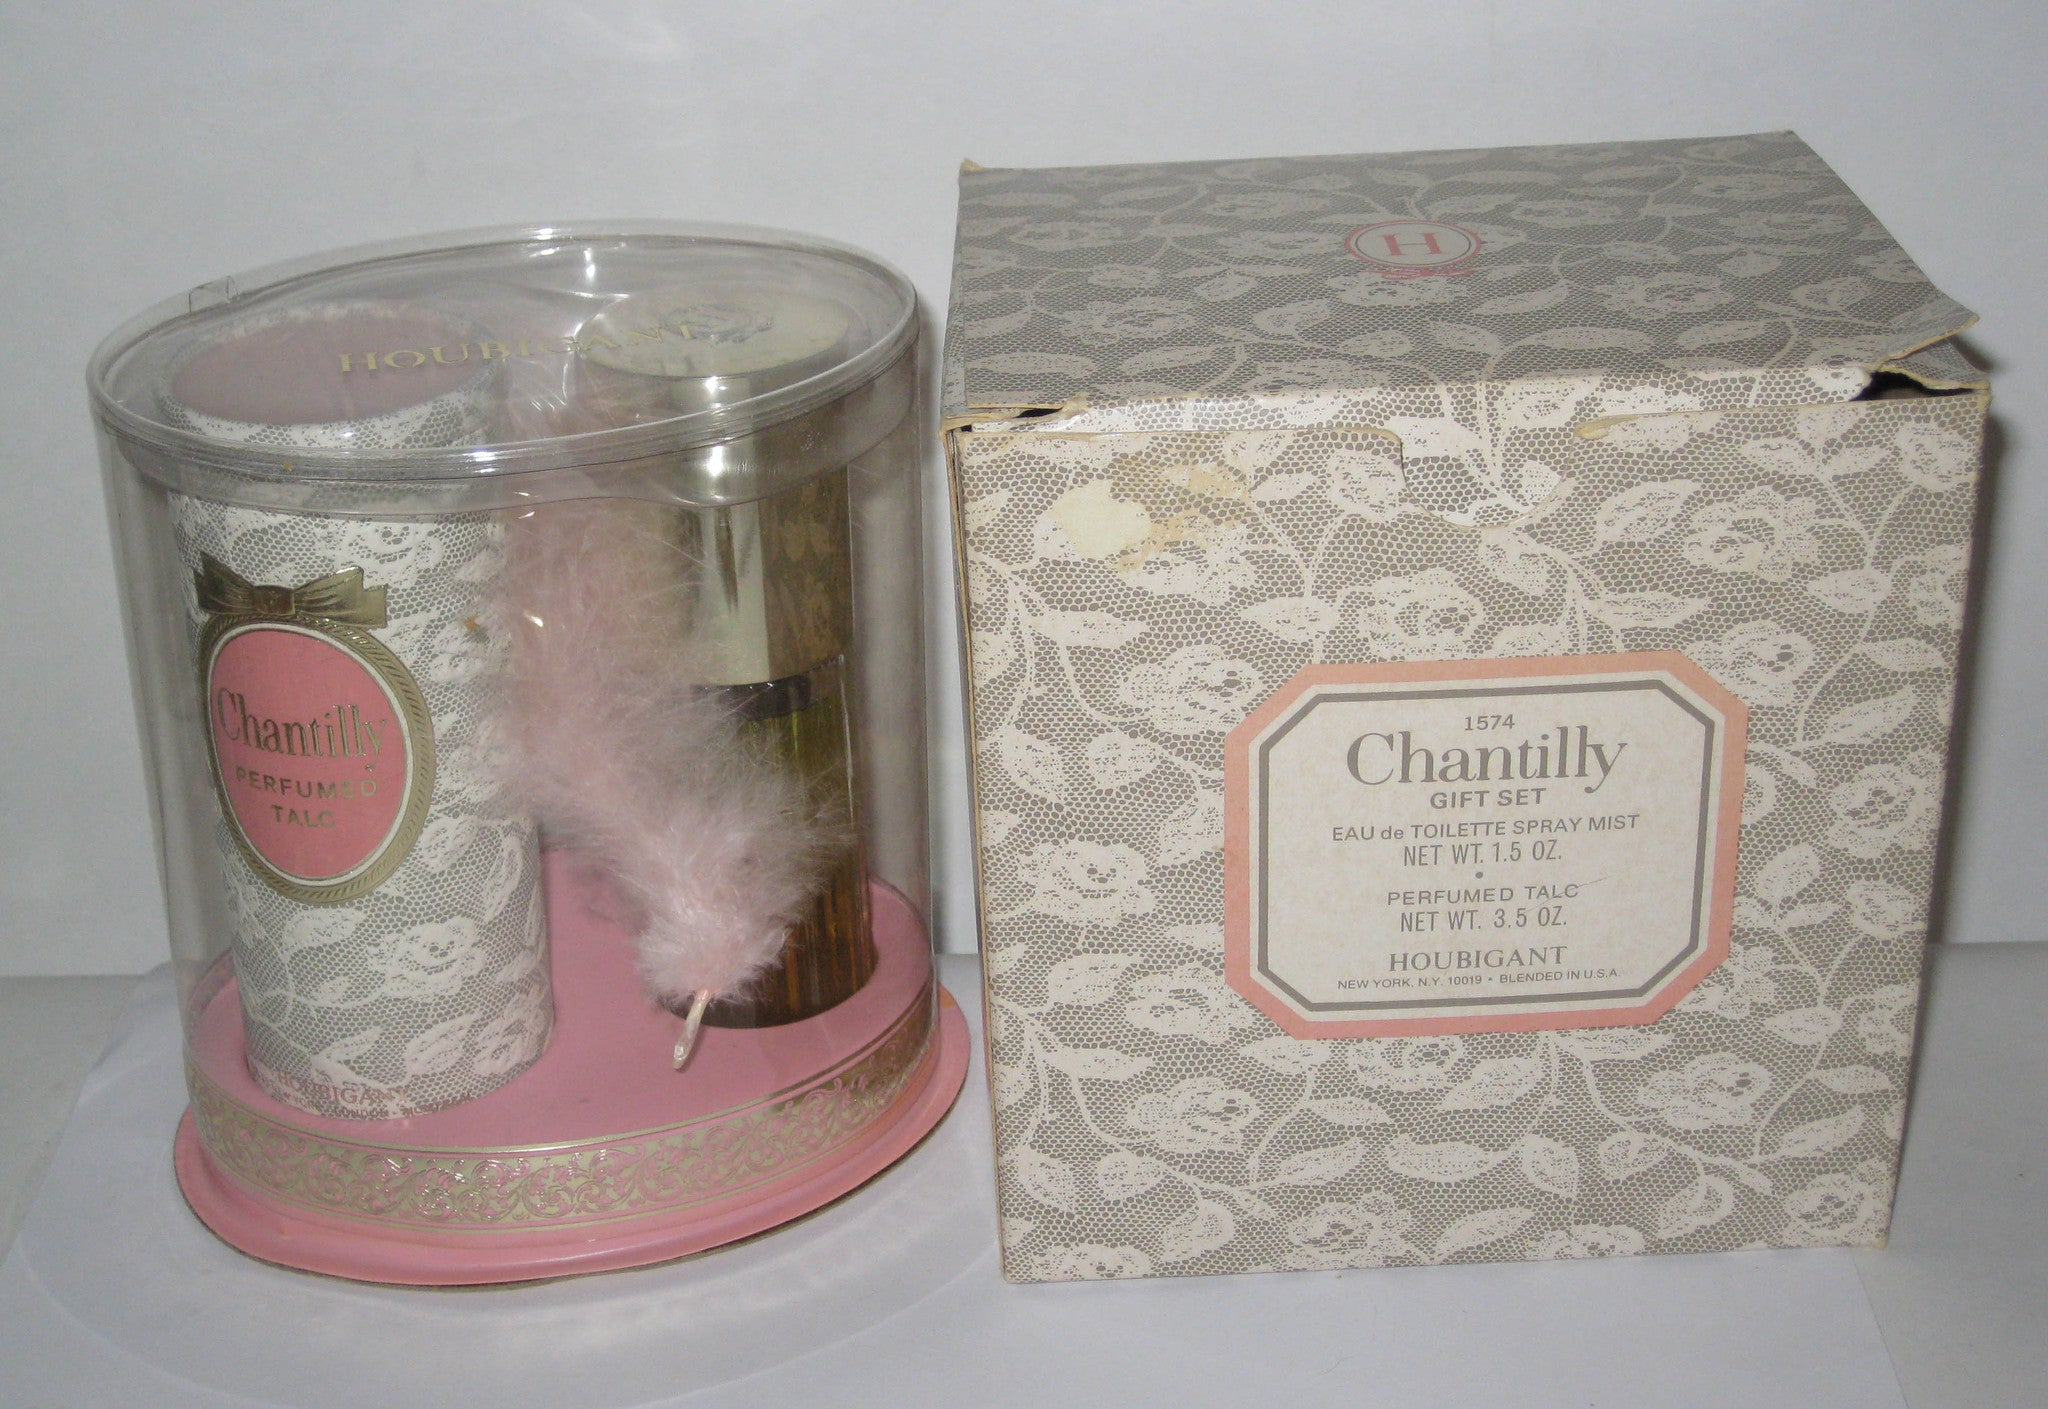 Houbigant Chantilly Gift Set